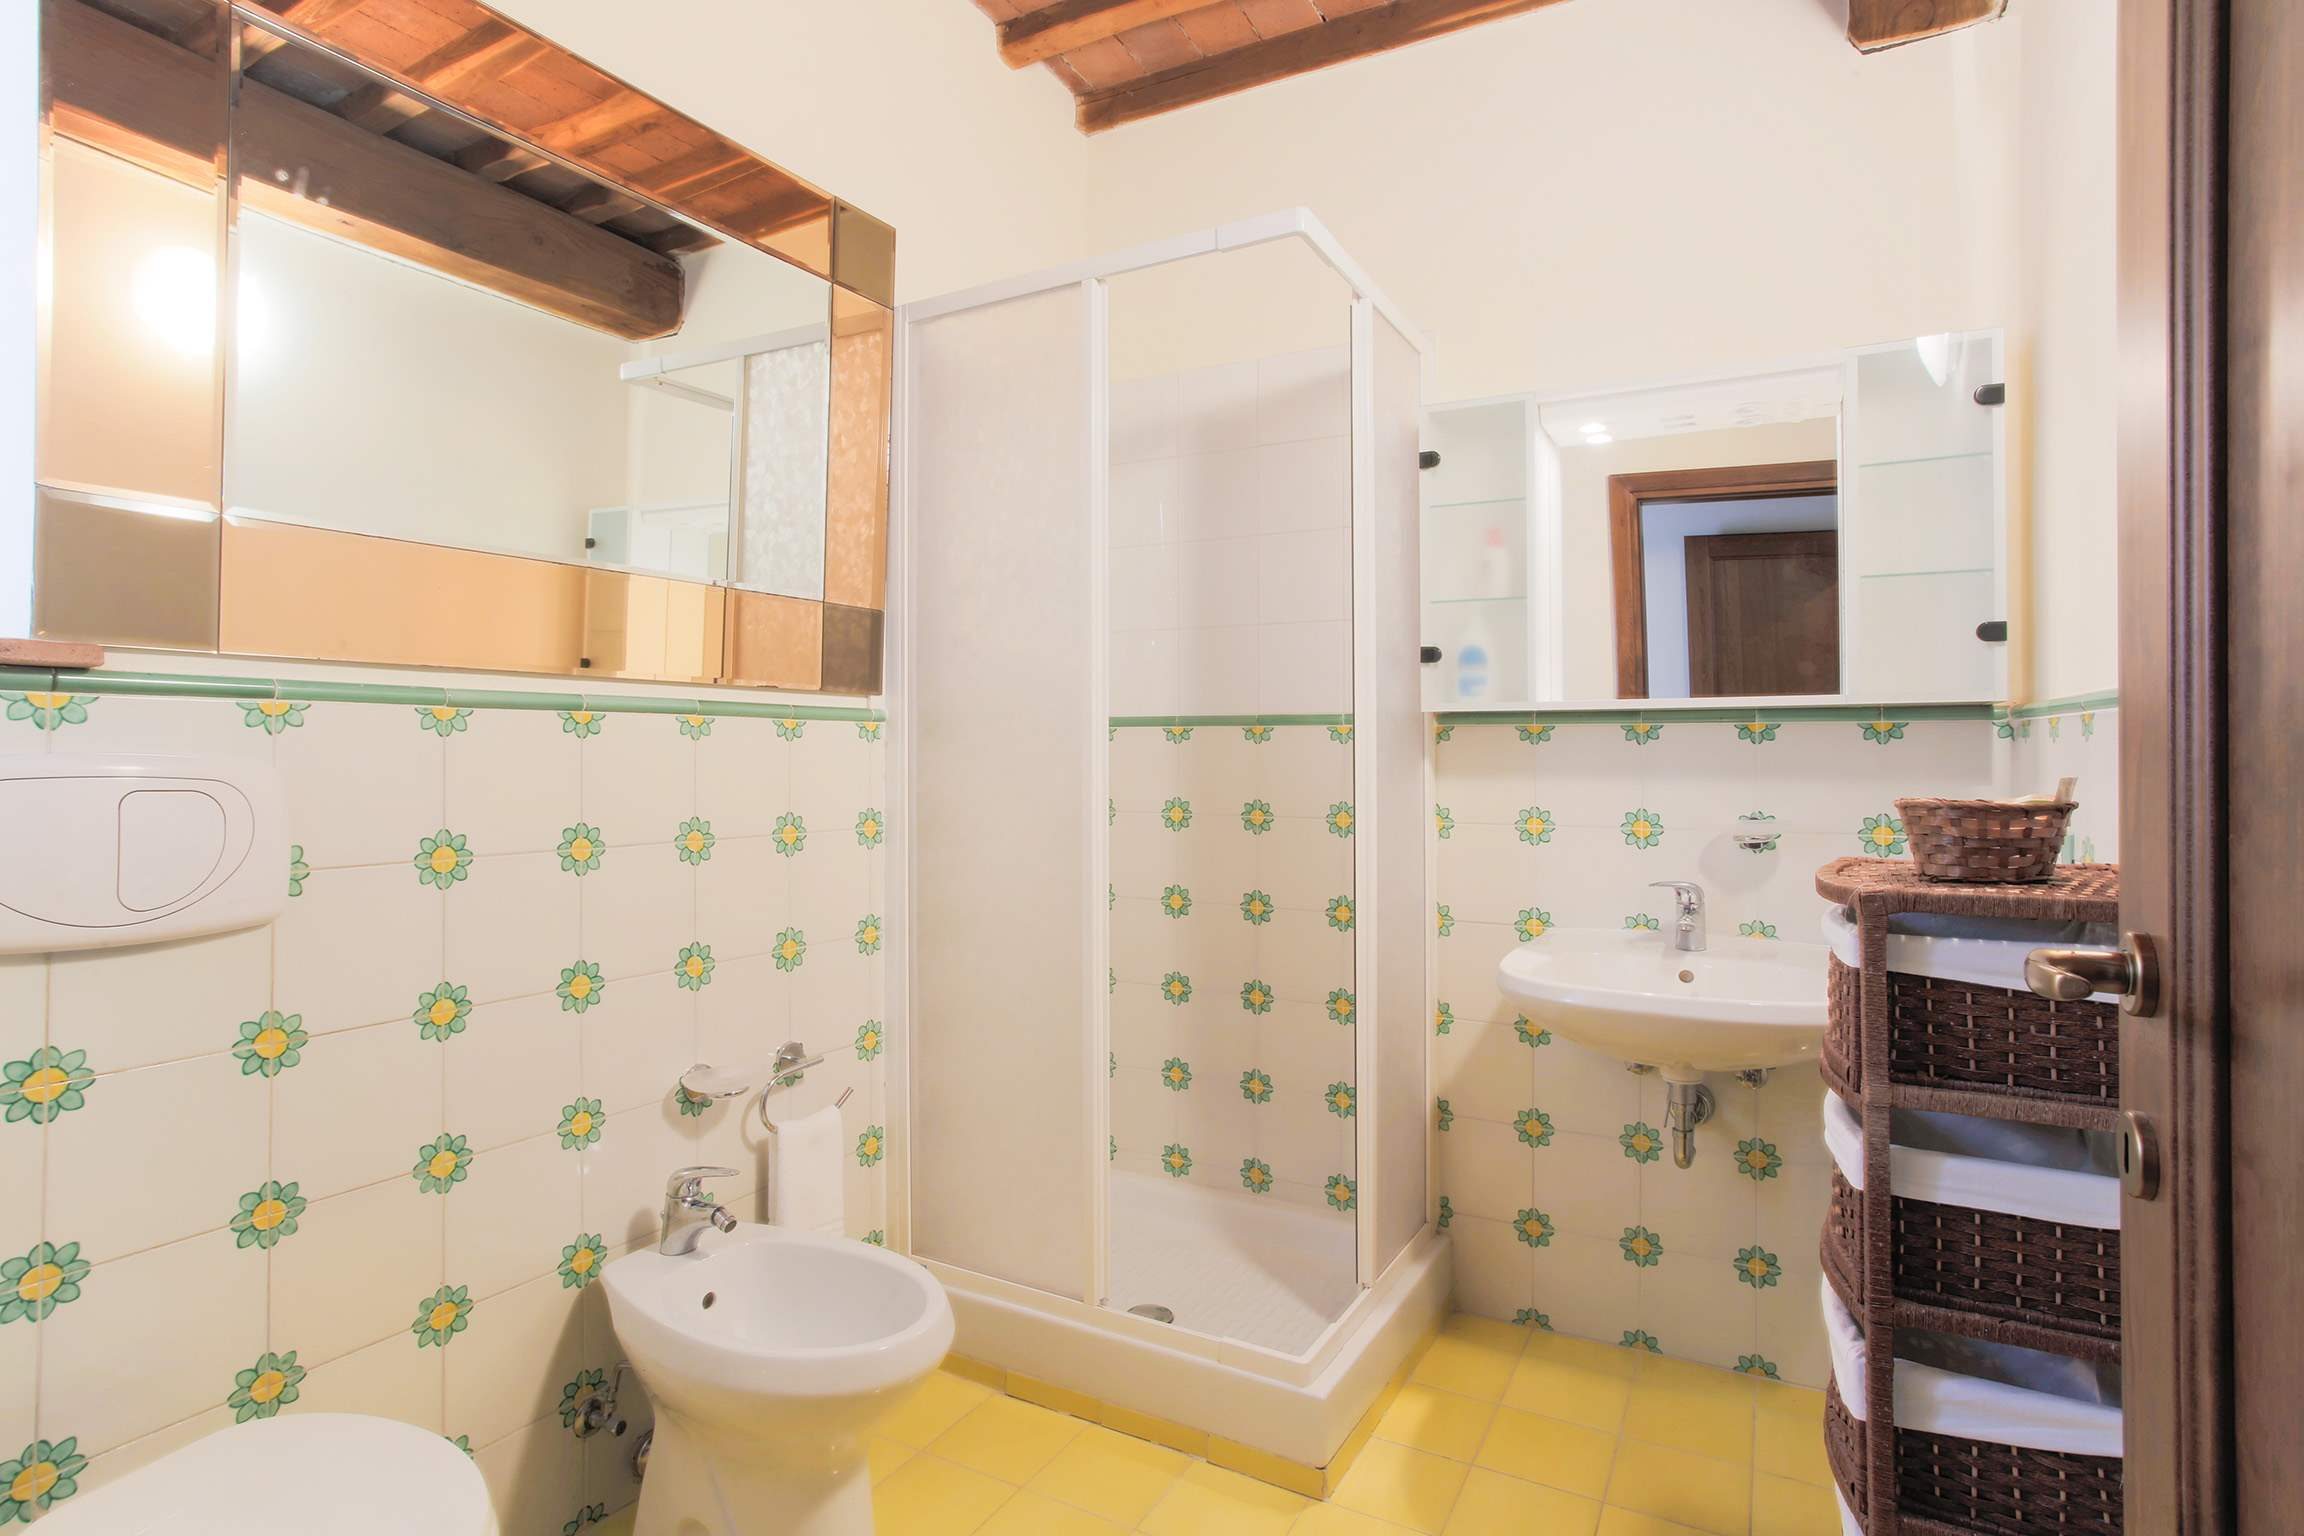 Casa Di Dante, 3 bedroom villa in North Tuscany - Pisa & Lucca Area, Tuscany Photo #27